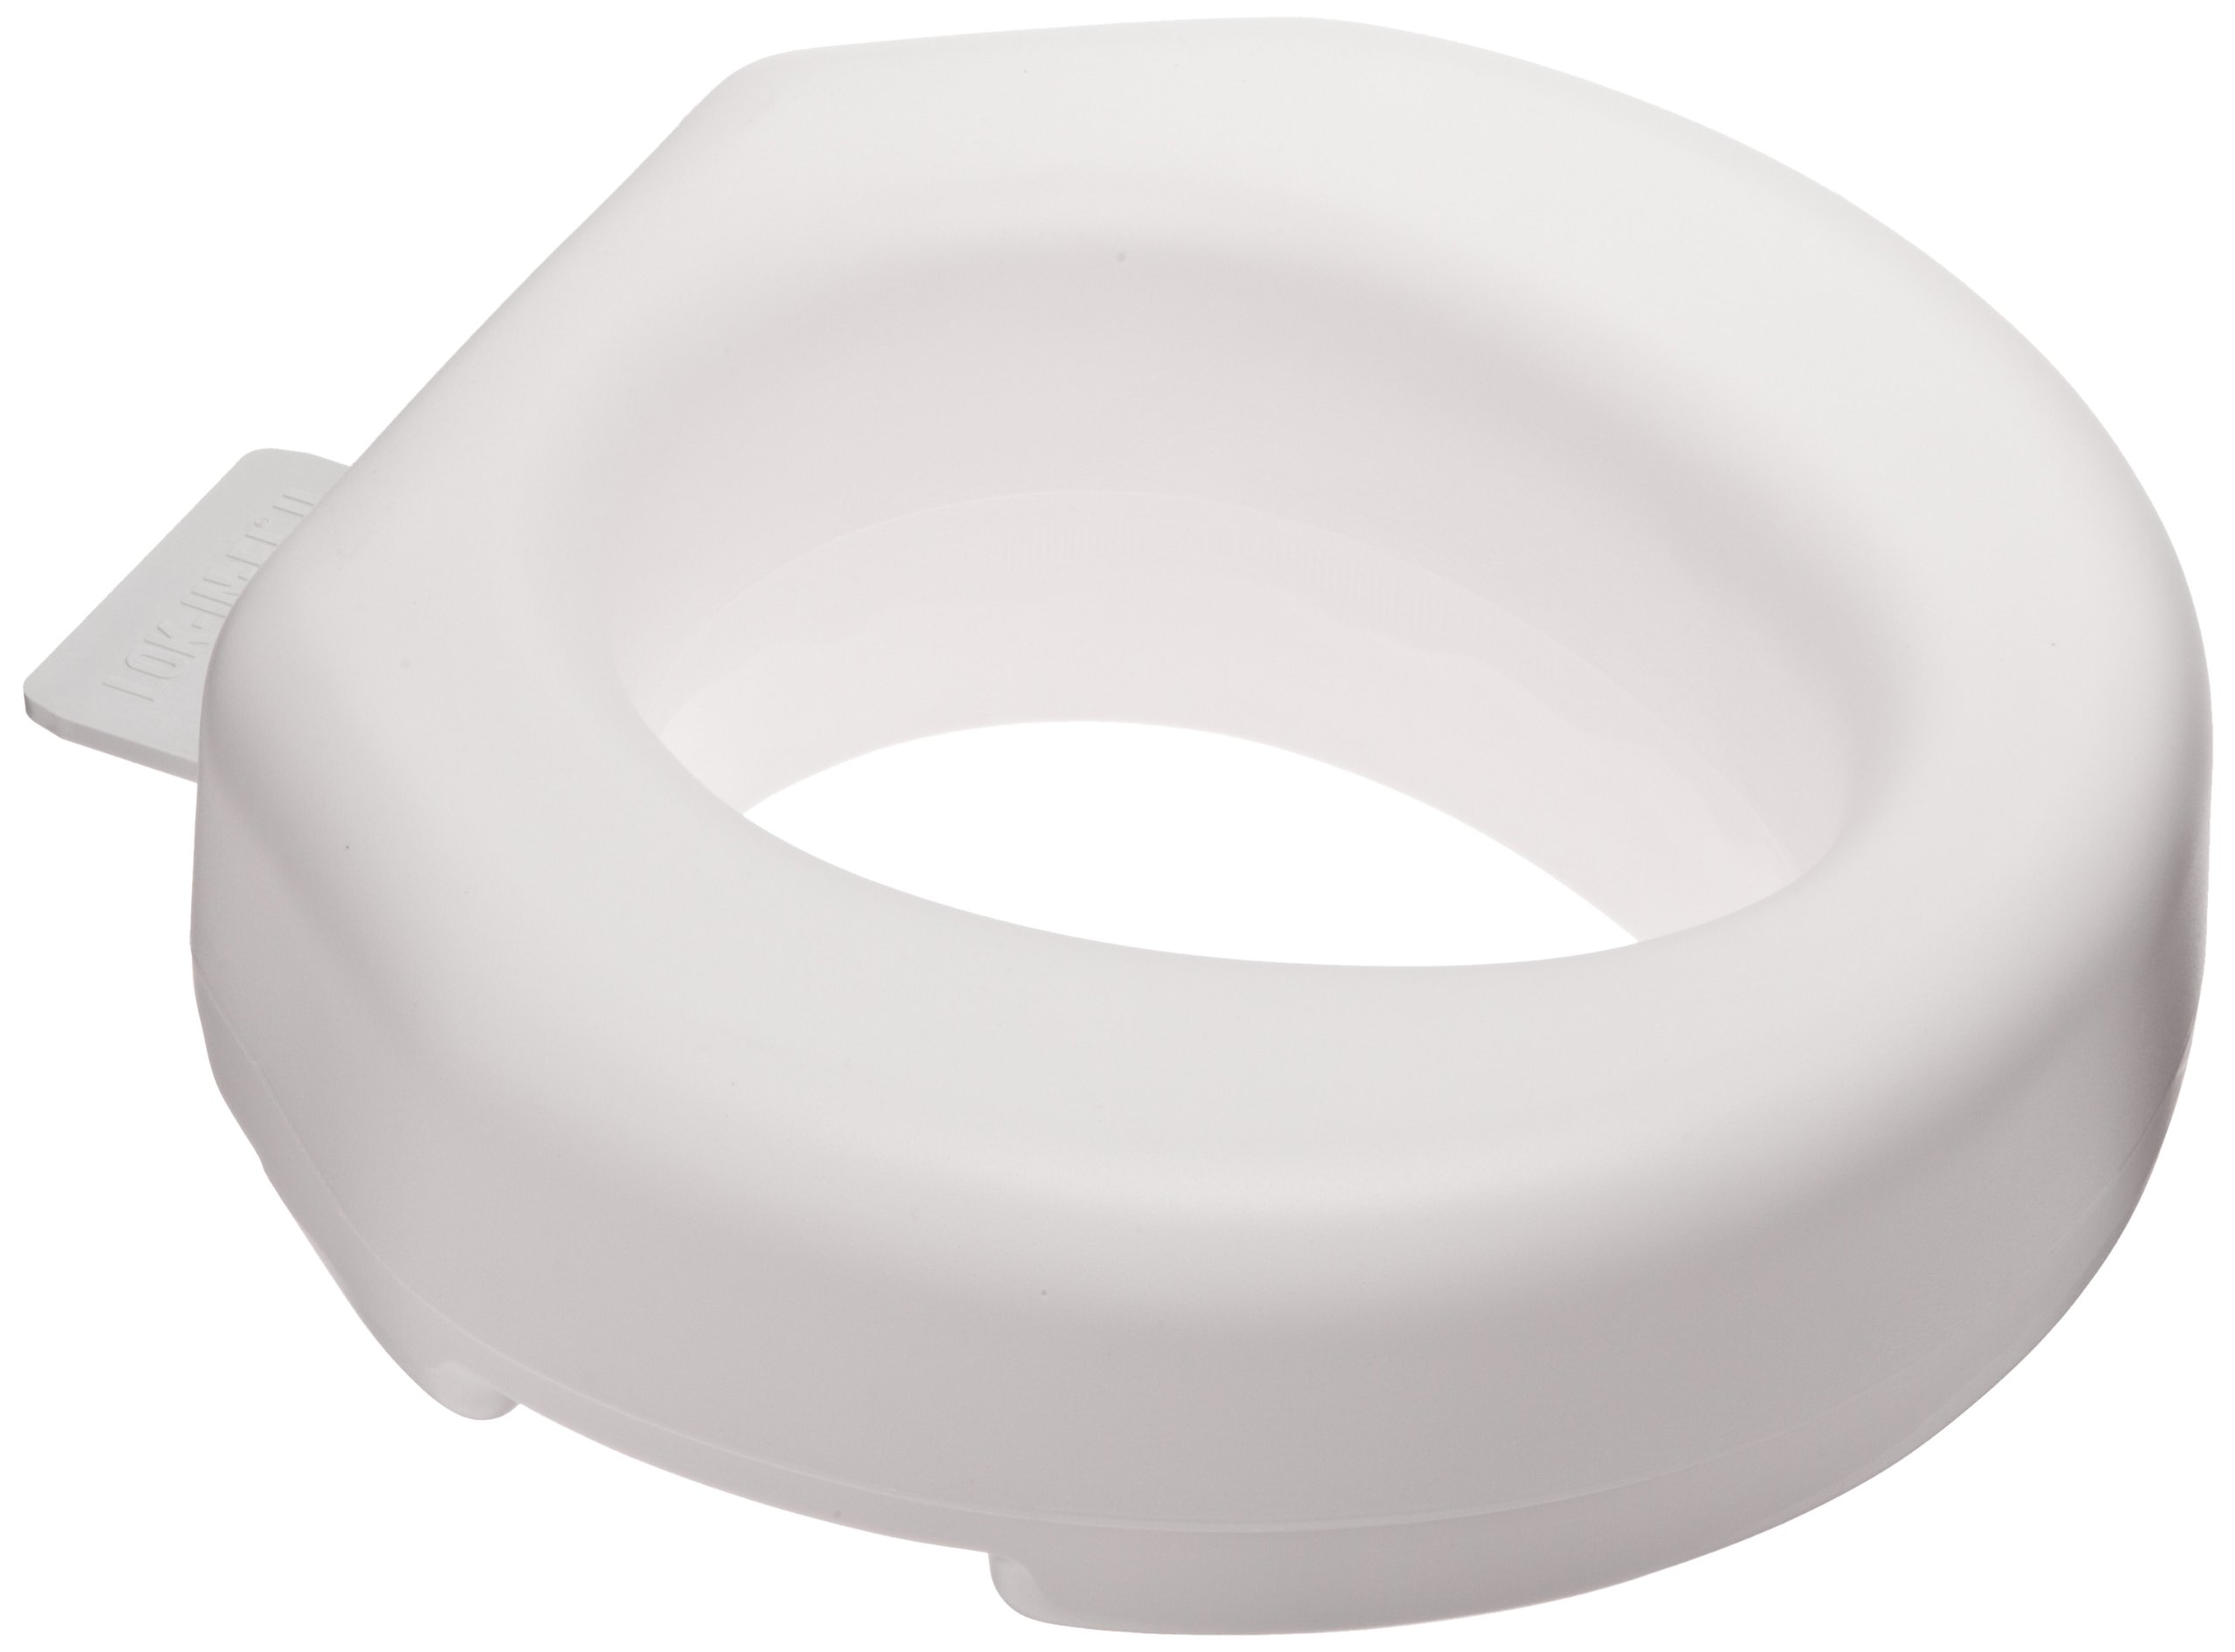 Original Tall-Ette 725812000 Elevated Toilet Seat with Lok-In-El by Maddak Inc.